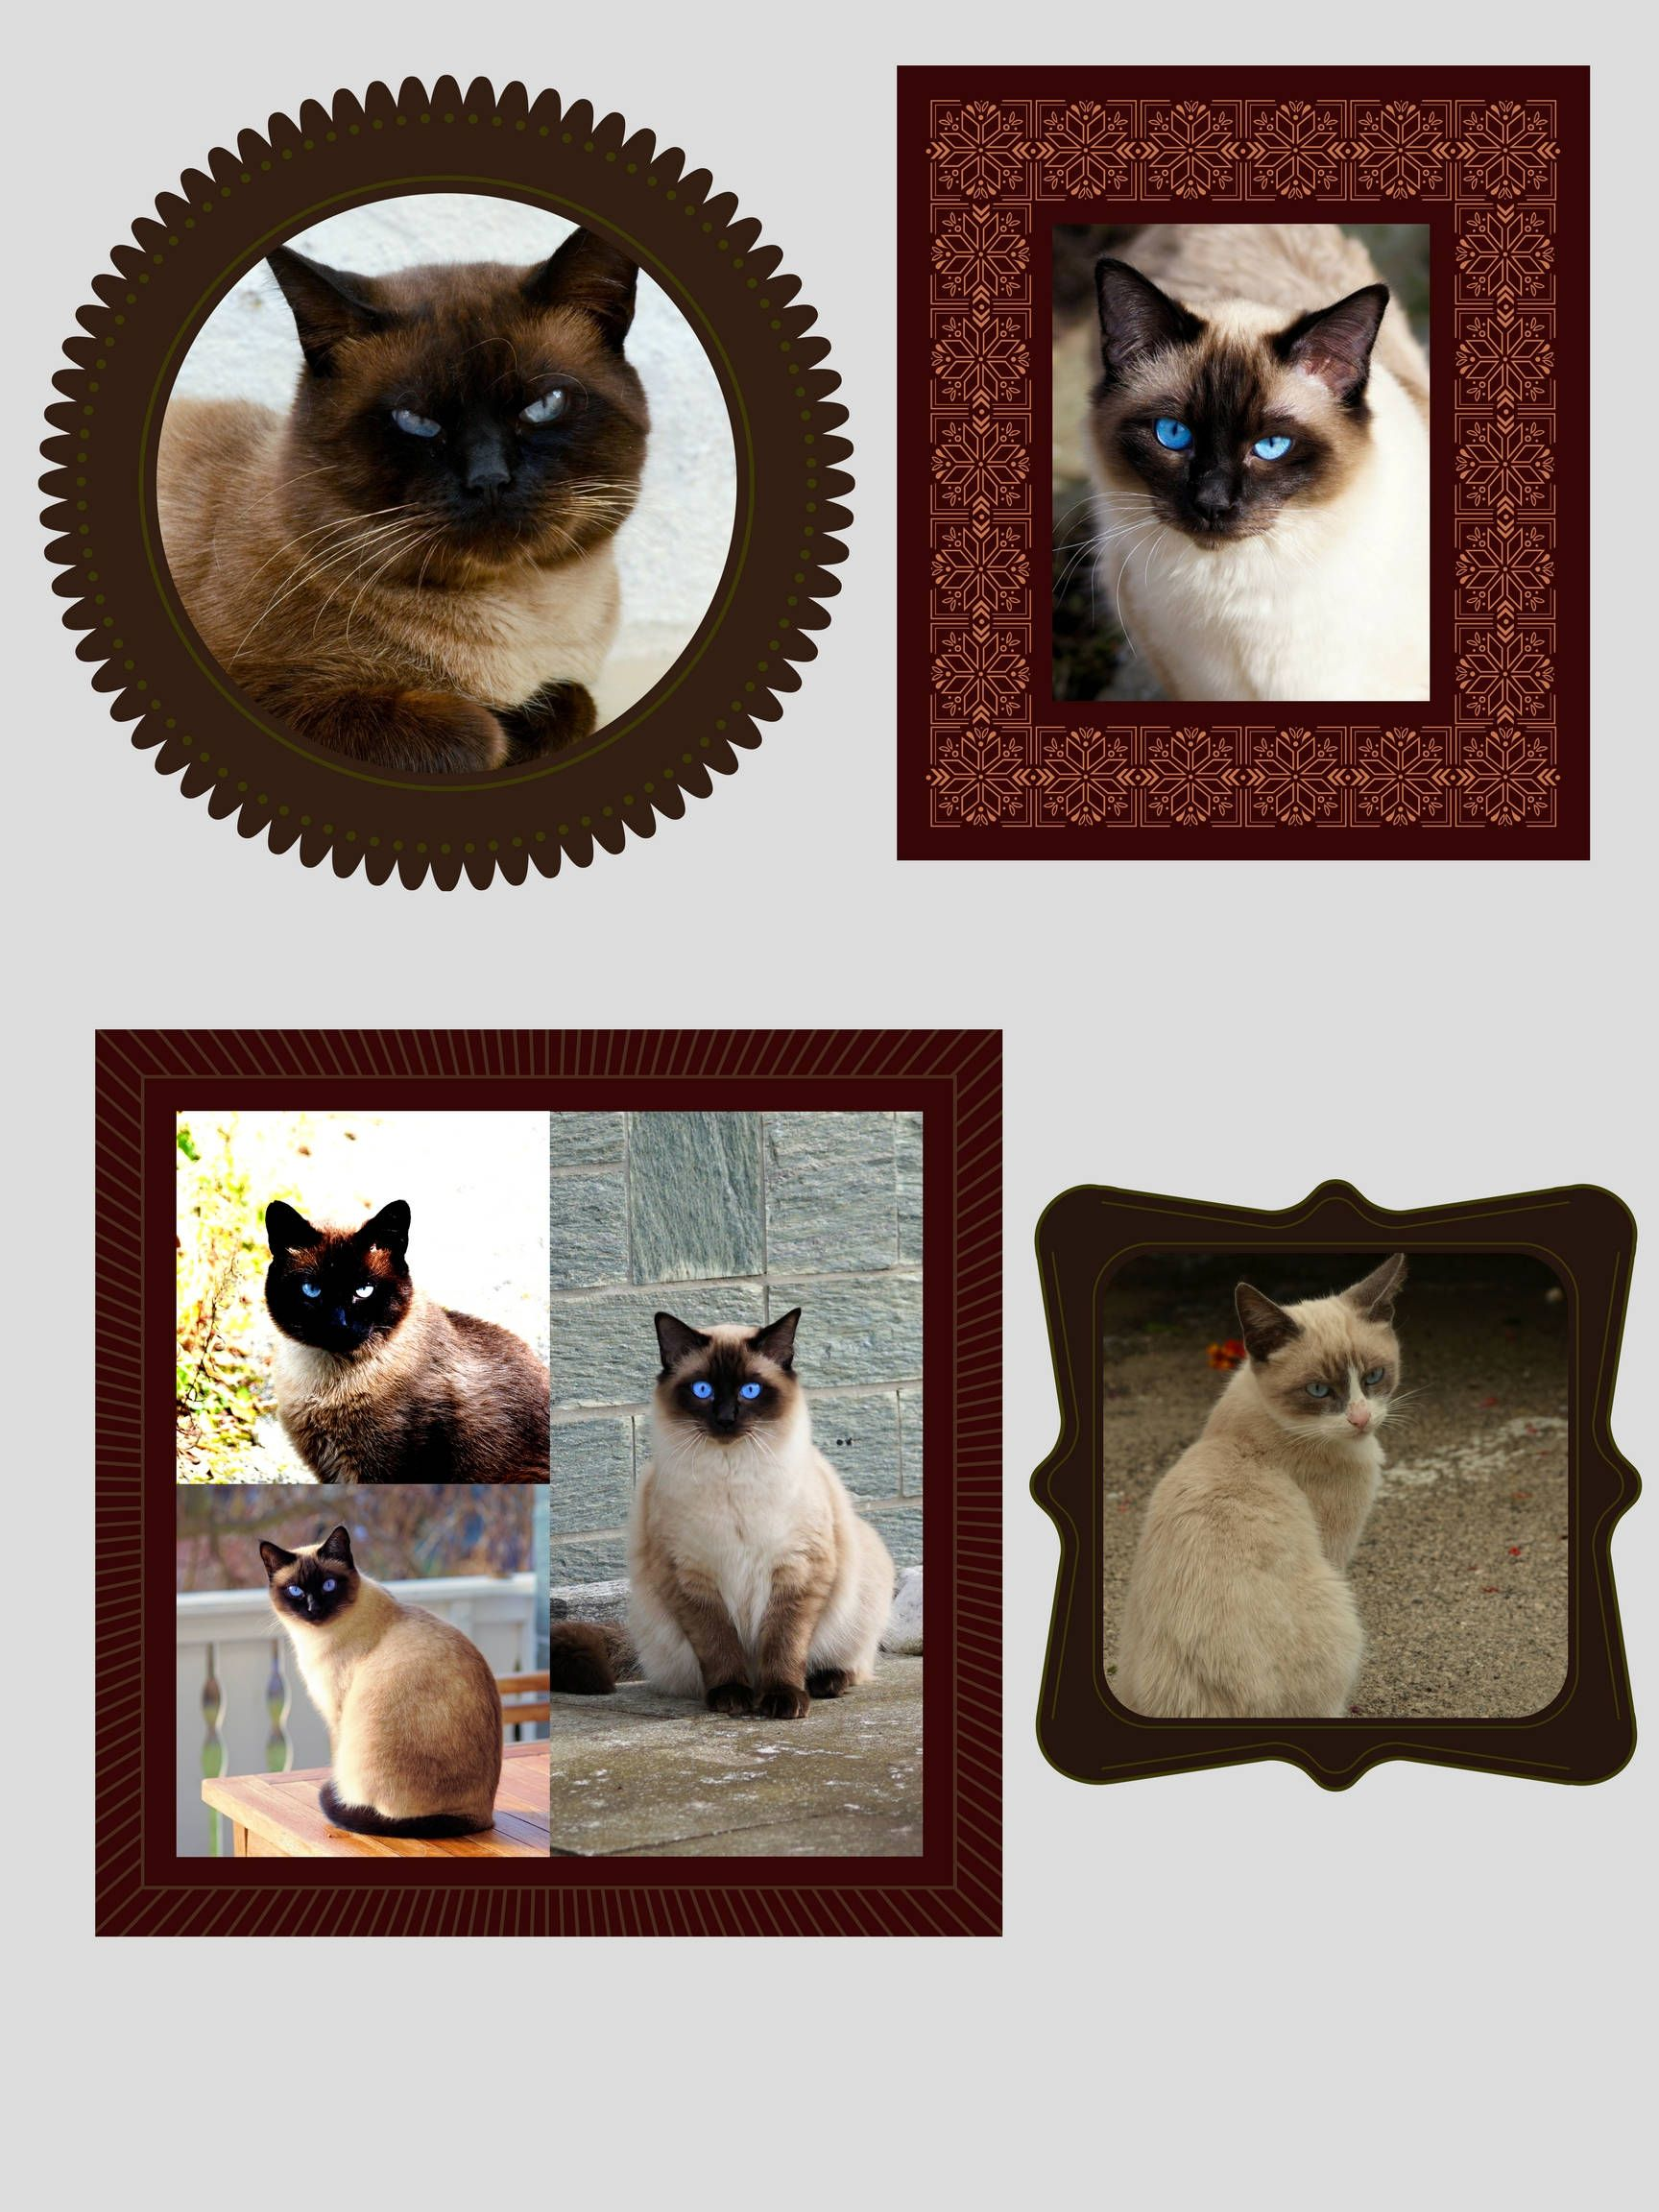 Siamese Cat Printable Art, Printable Poster, 18 x 24 inches, 8.5 x 11 inches, Cat Lovers, Wall Art, Home Art, Digital Download Only by KittyVoices on Etsy